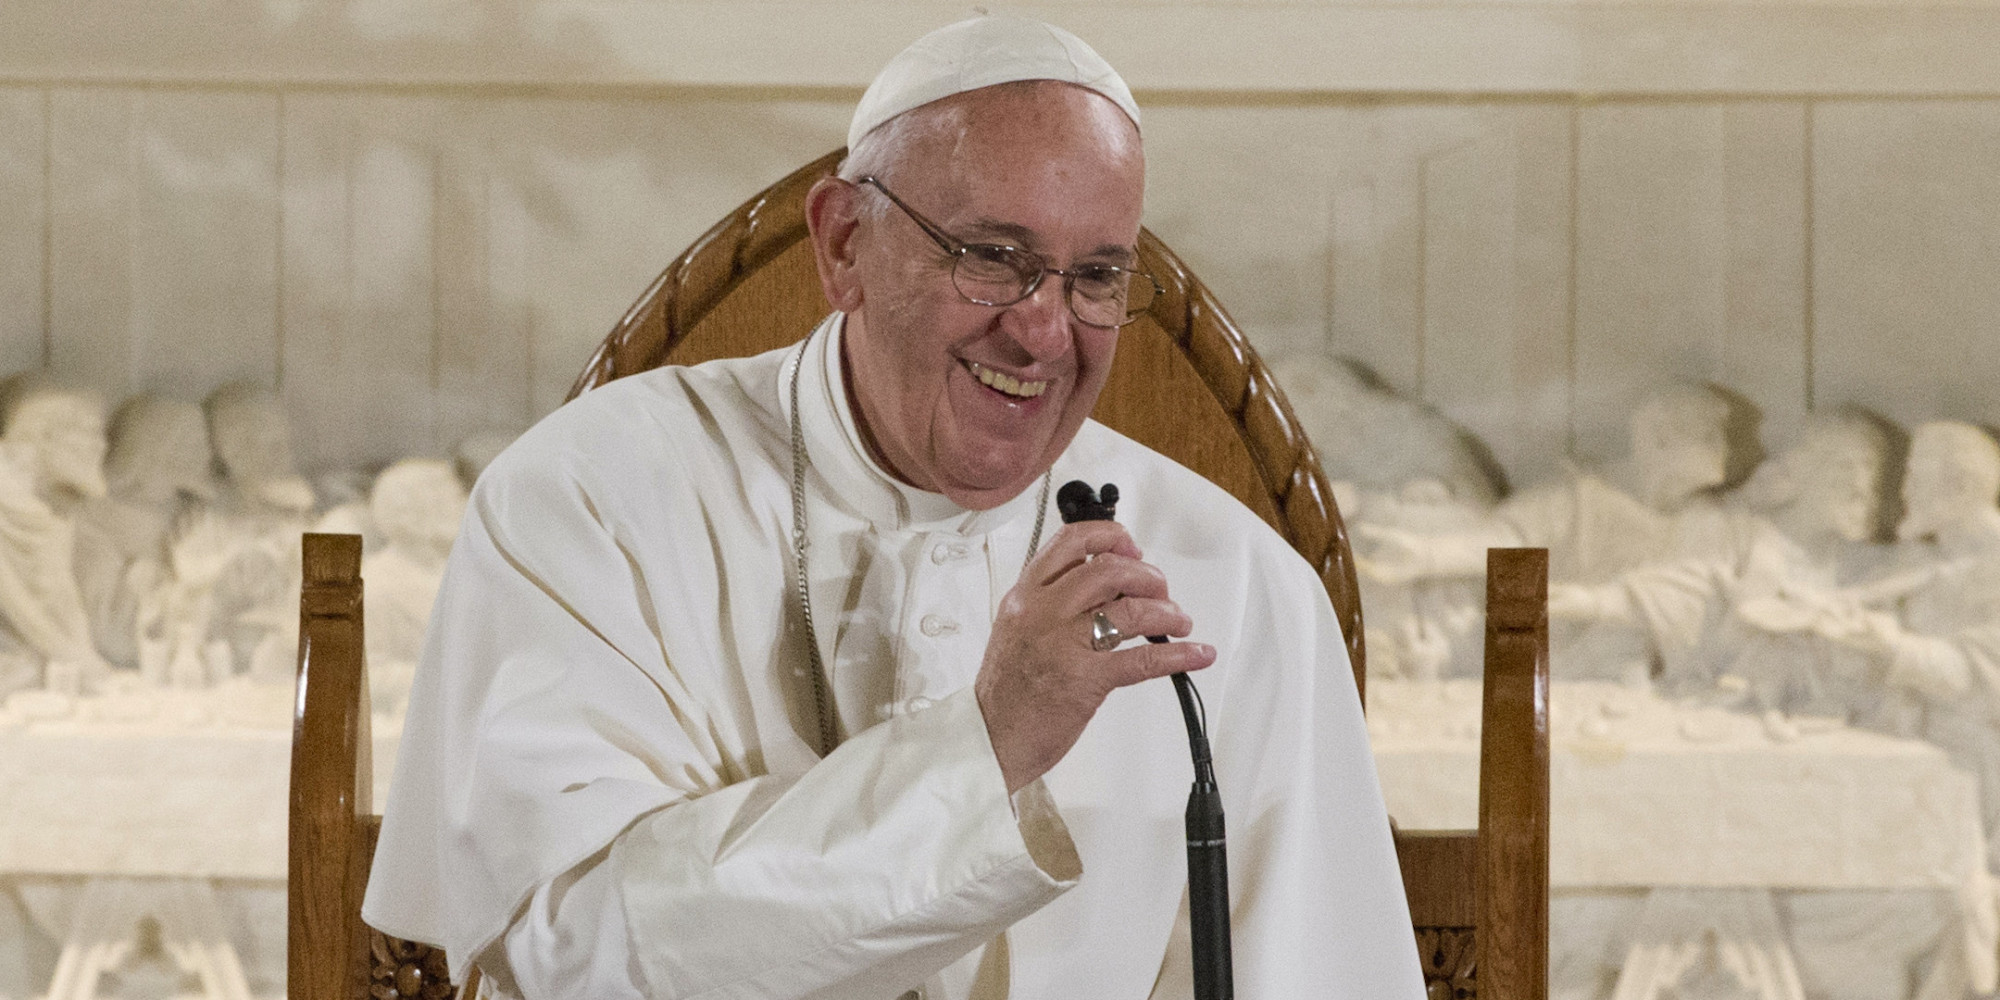 Pope Francis gestures during his speech at St. Patrick's Church in Washington, Thursday, Sept. 24, 2015, following his address to a joint meeting of Congress on Capitol Hill. (AP Photo/Alessandra Tarantino)